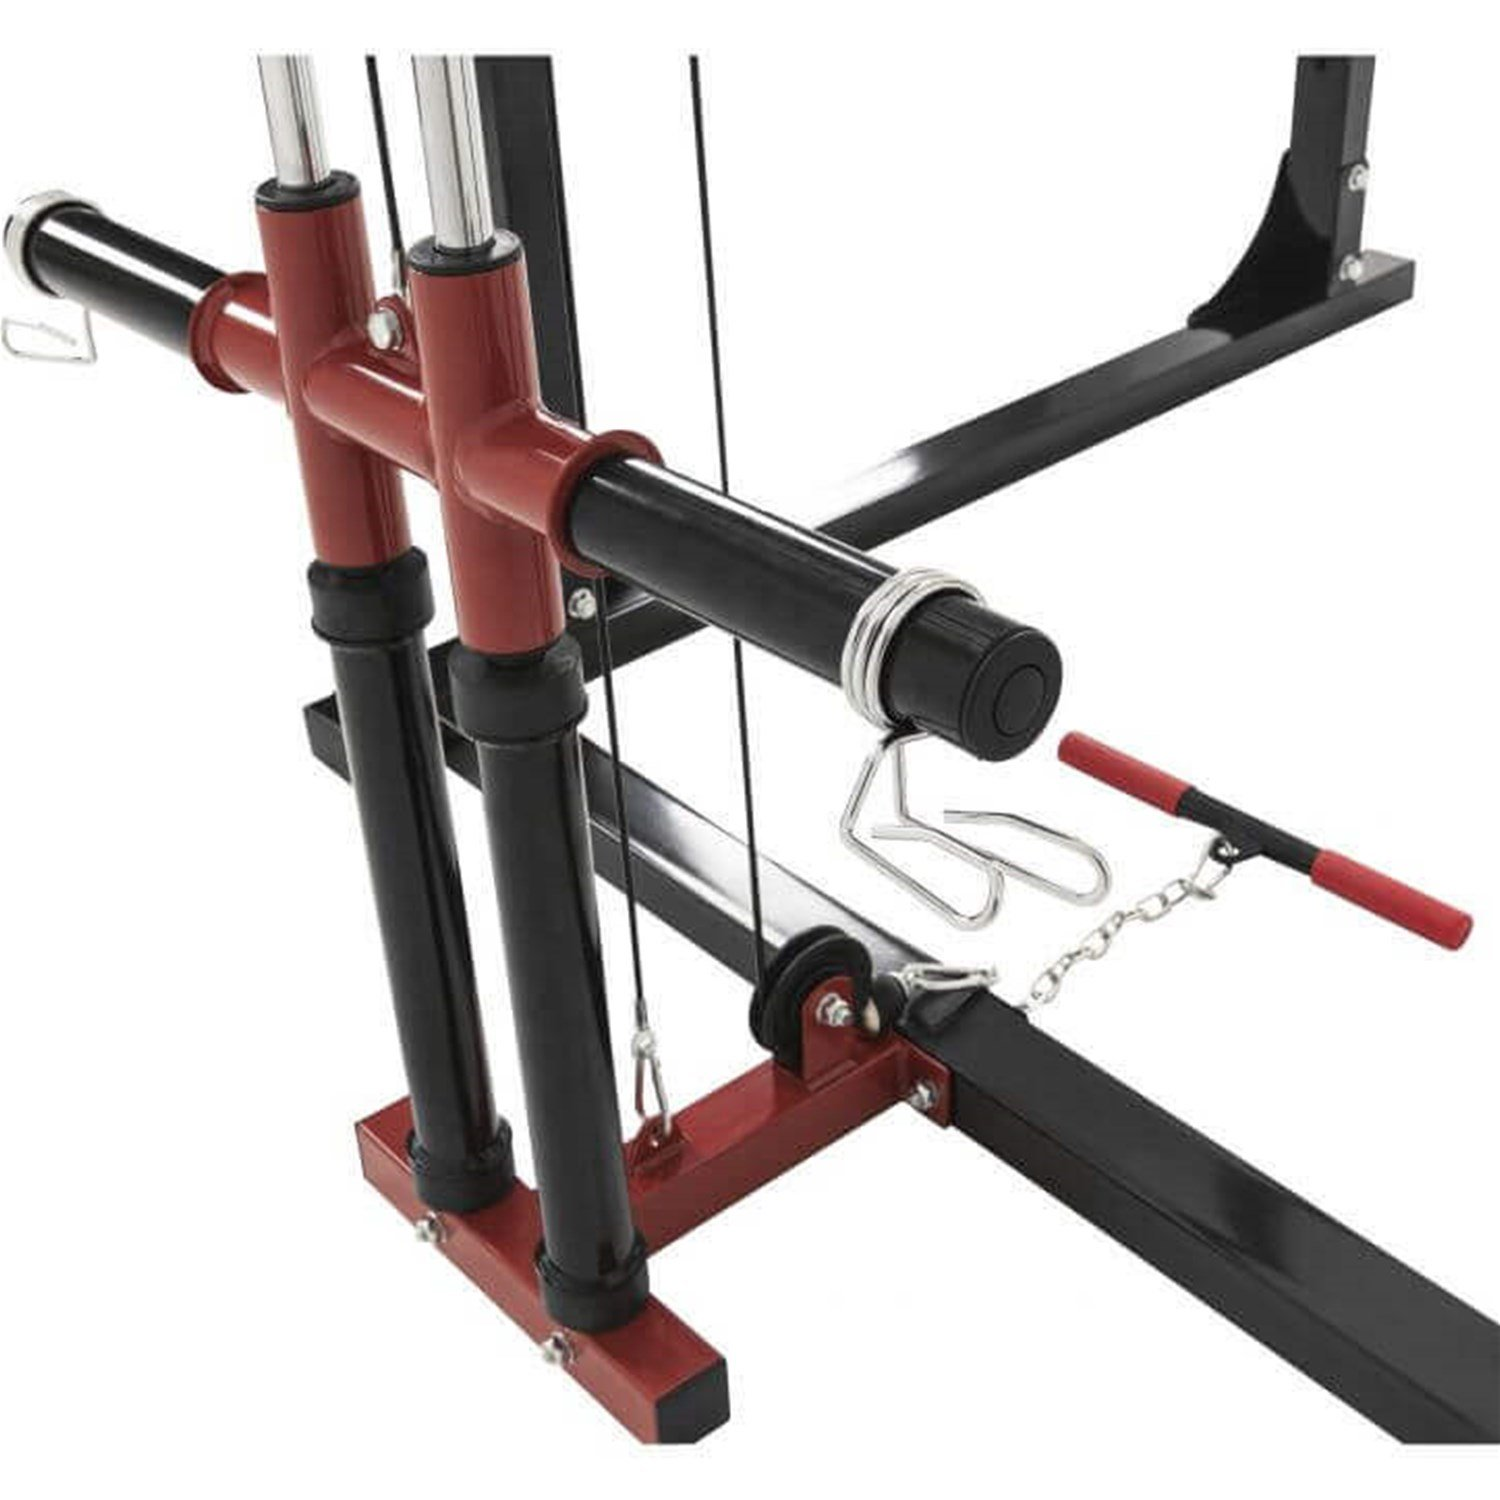 Power Rack Cage - Ink kabelstation - 6